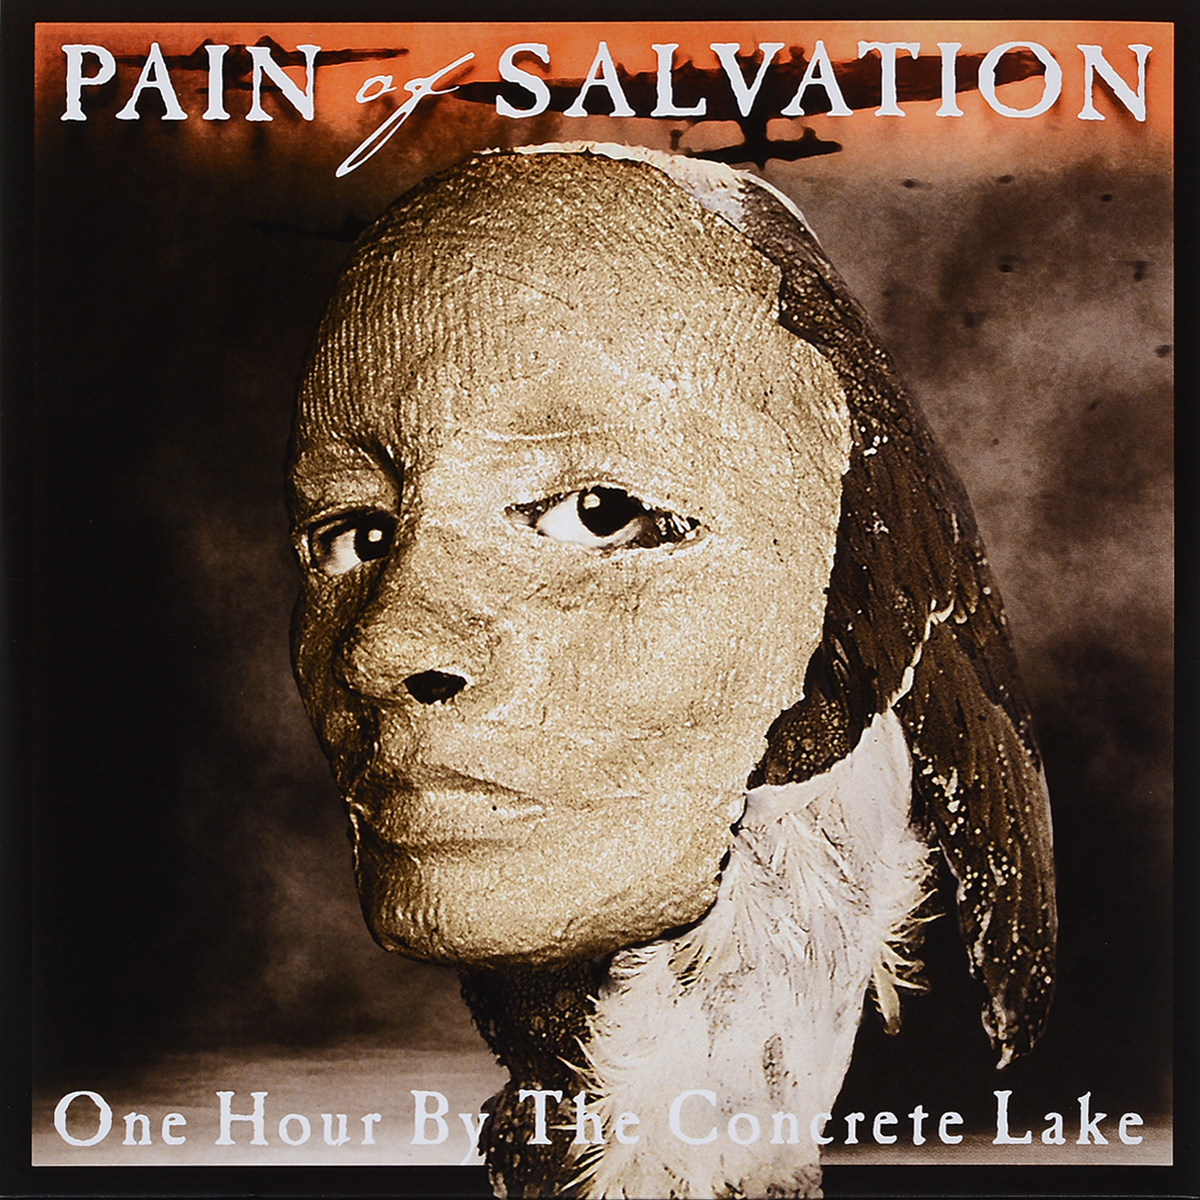 Pain Of Salvation Pain Of Salvation. One Hour By The Concrete Lake (2 LP + CD) ending themes on the two deaths of pain of salvation limited edition 2 dvd 2 cd